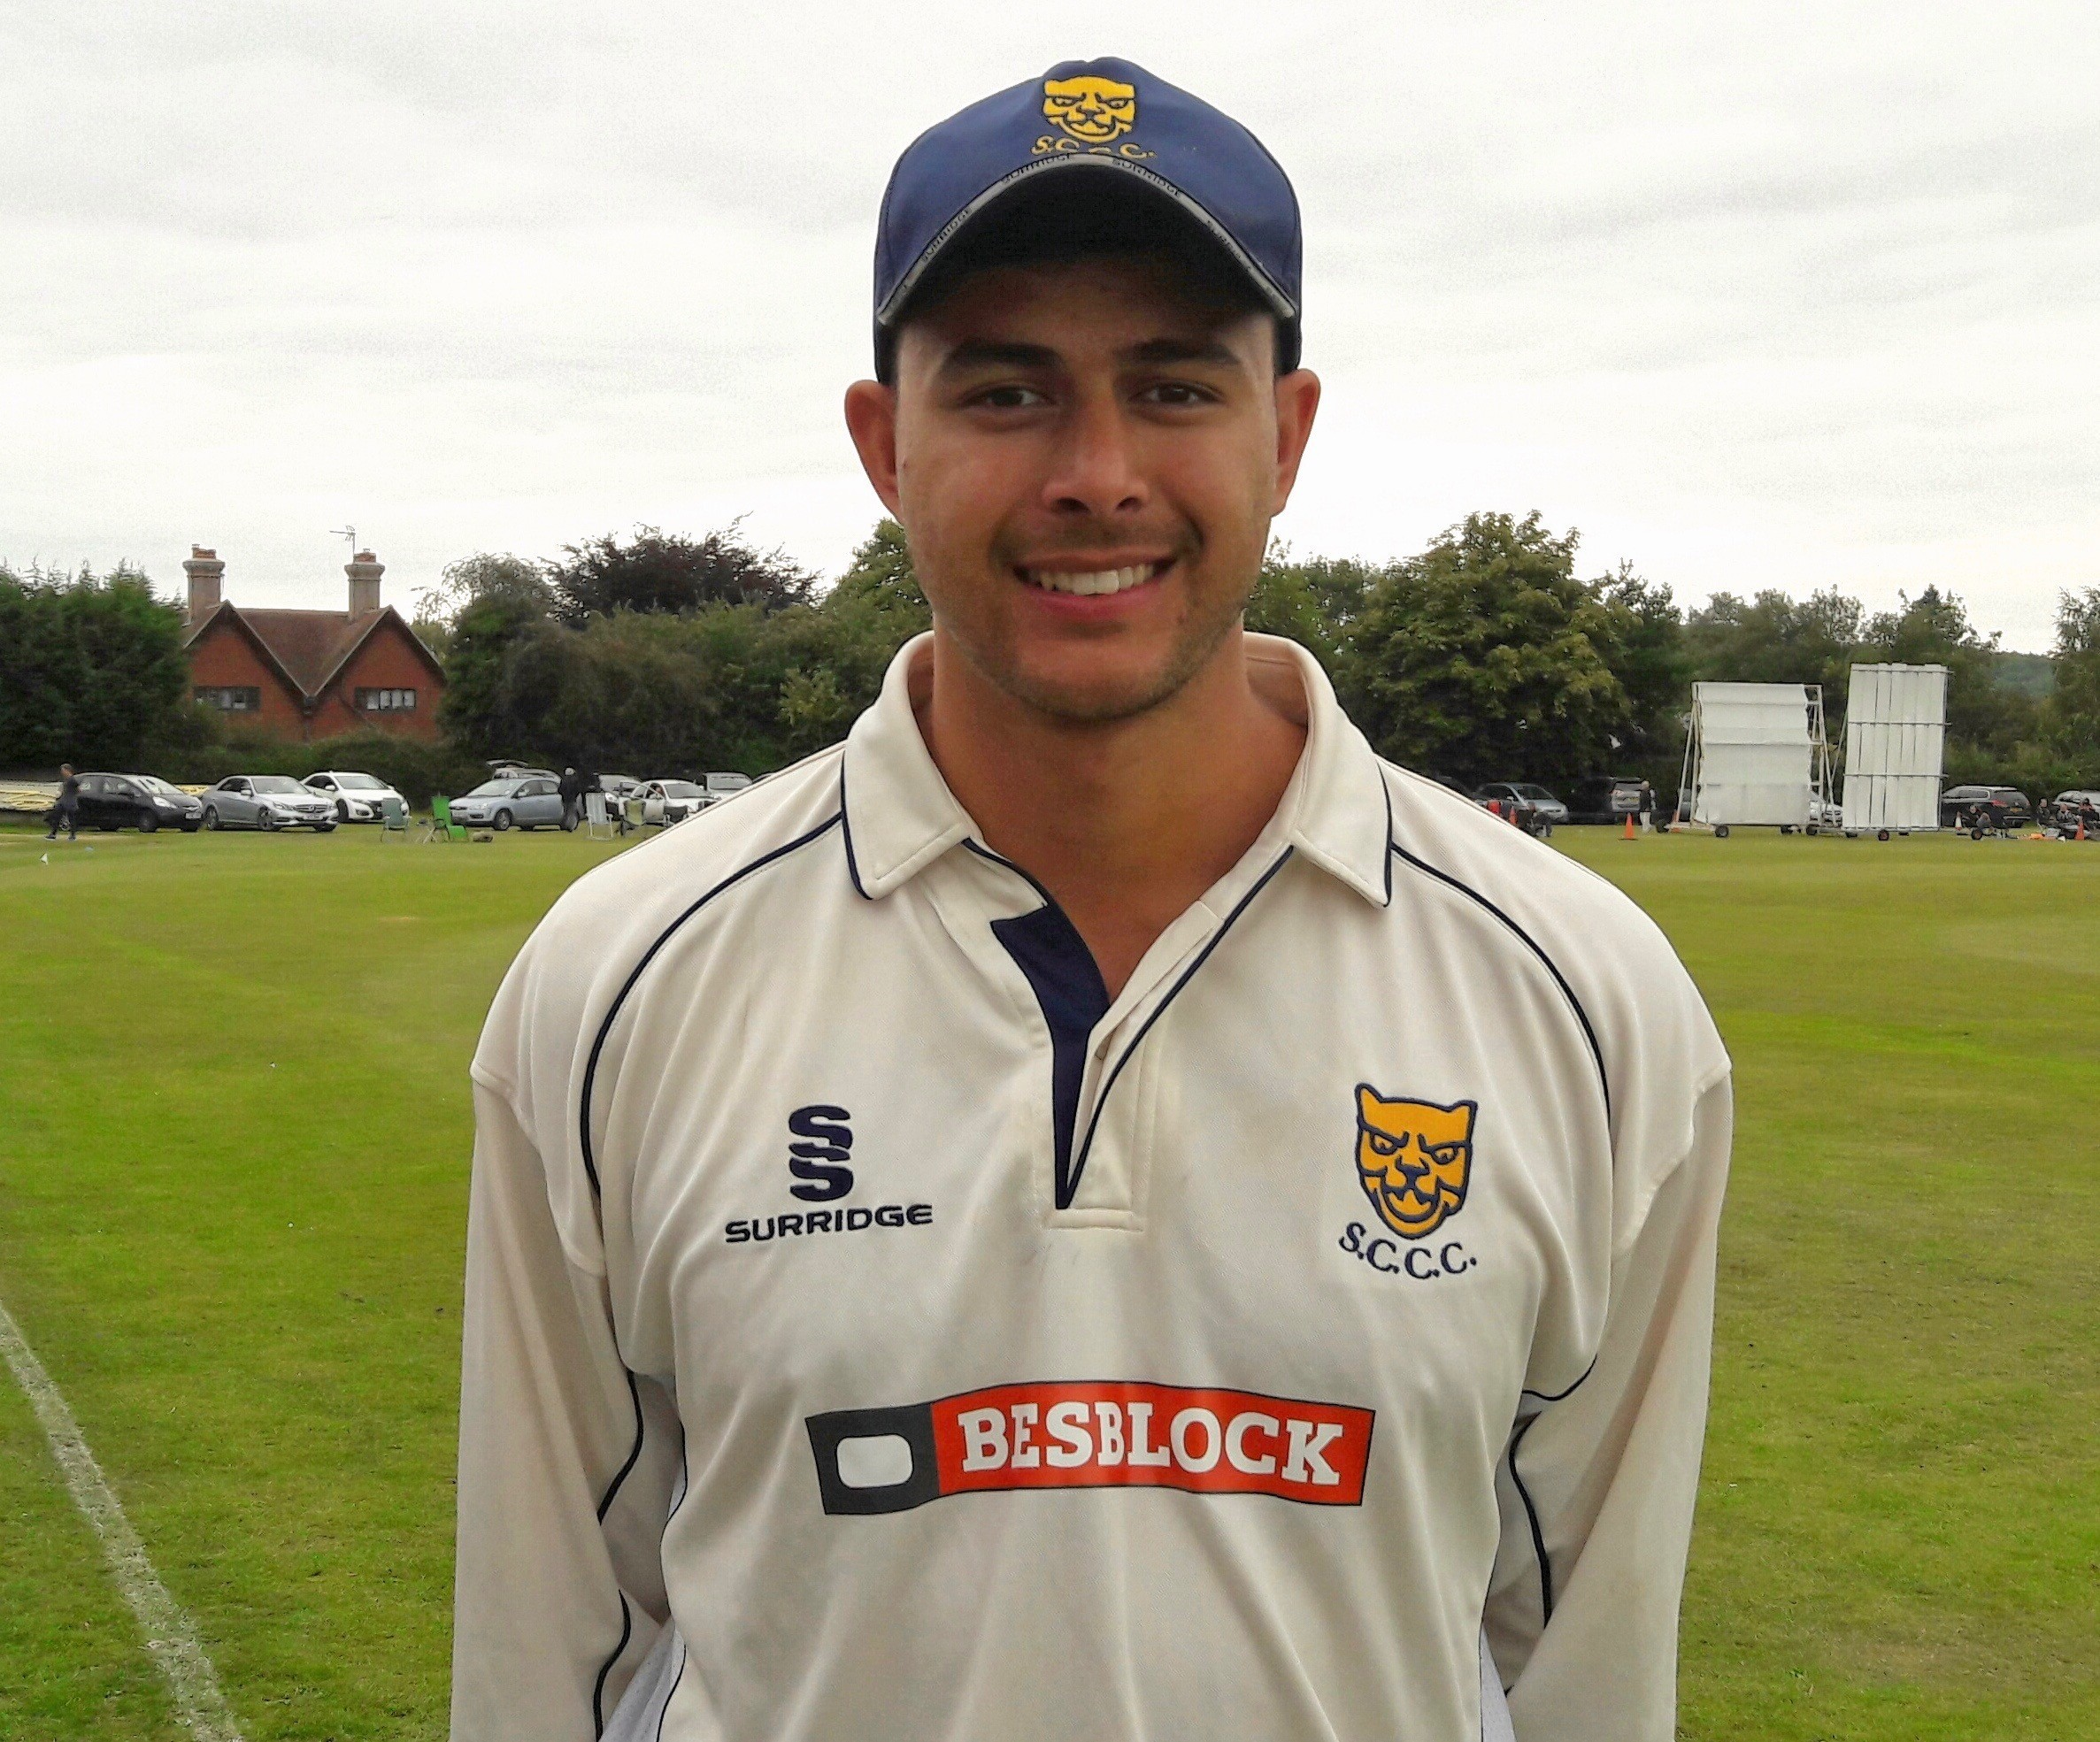 Joe Carrasco has been called up to play for Shropshire